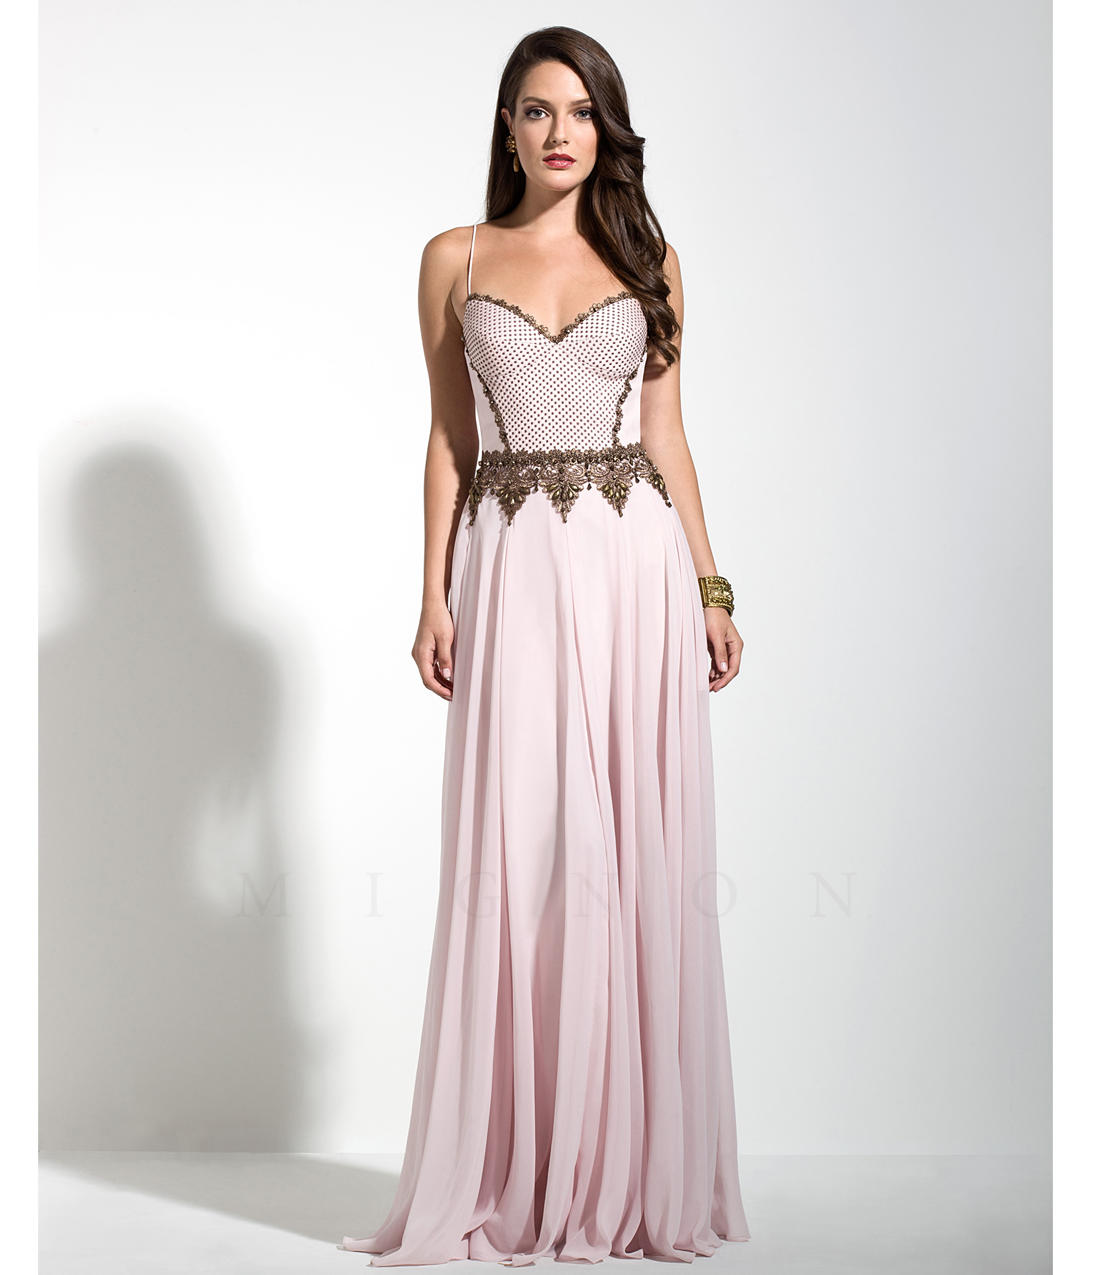 Wedding Gowns Louisville Ky: Prom Dresses Louisville Ky